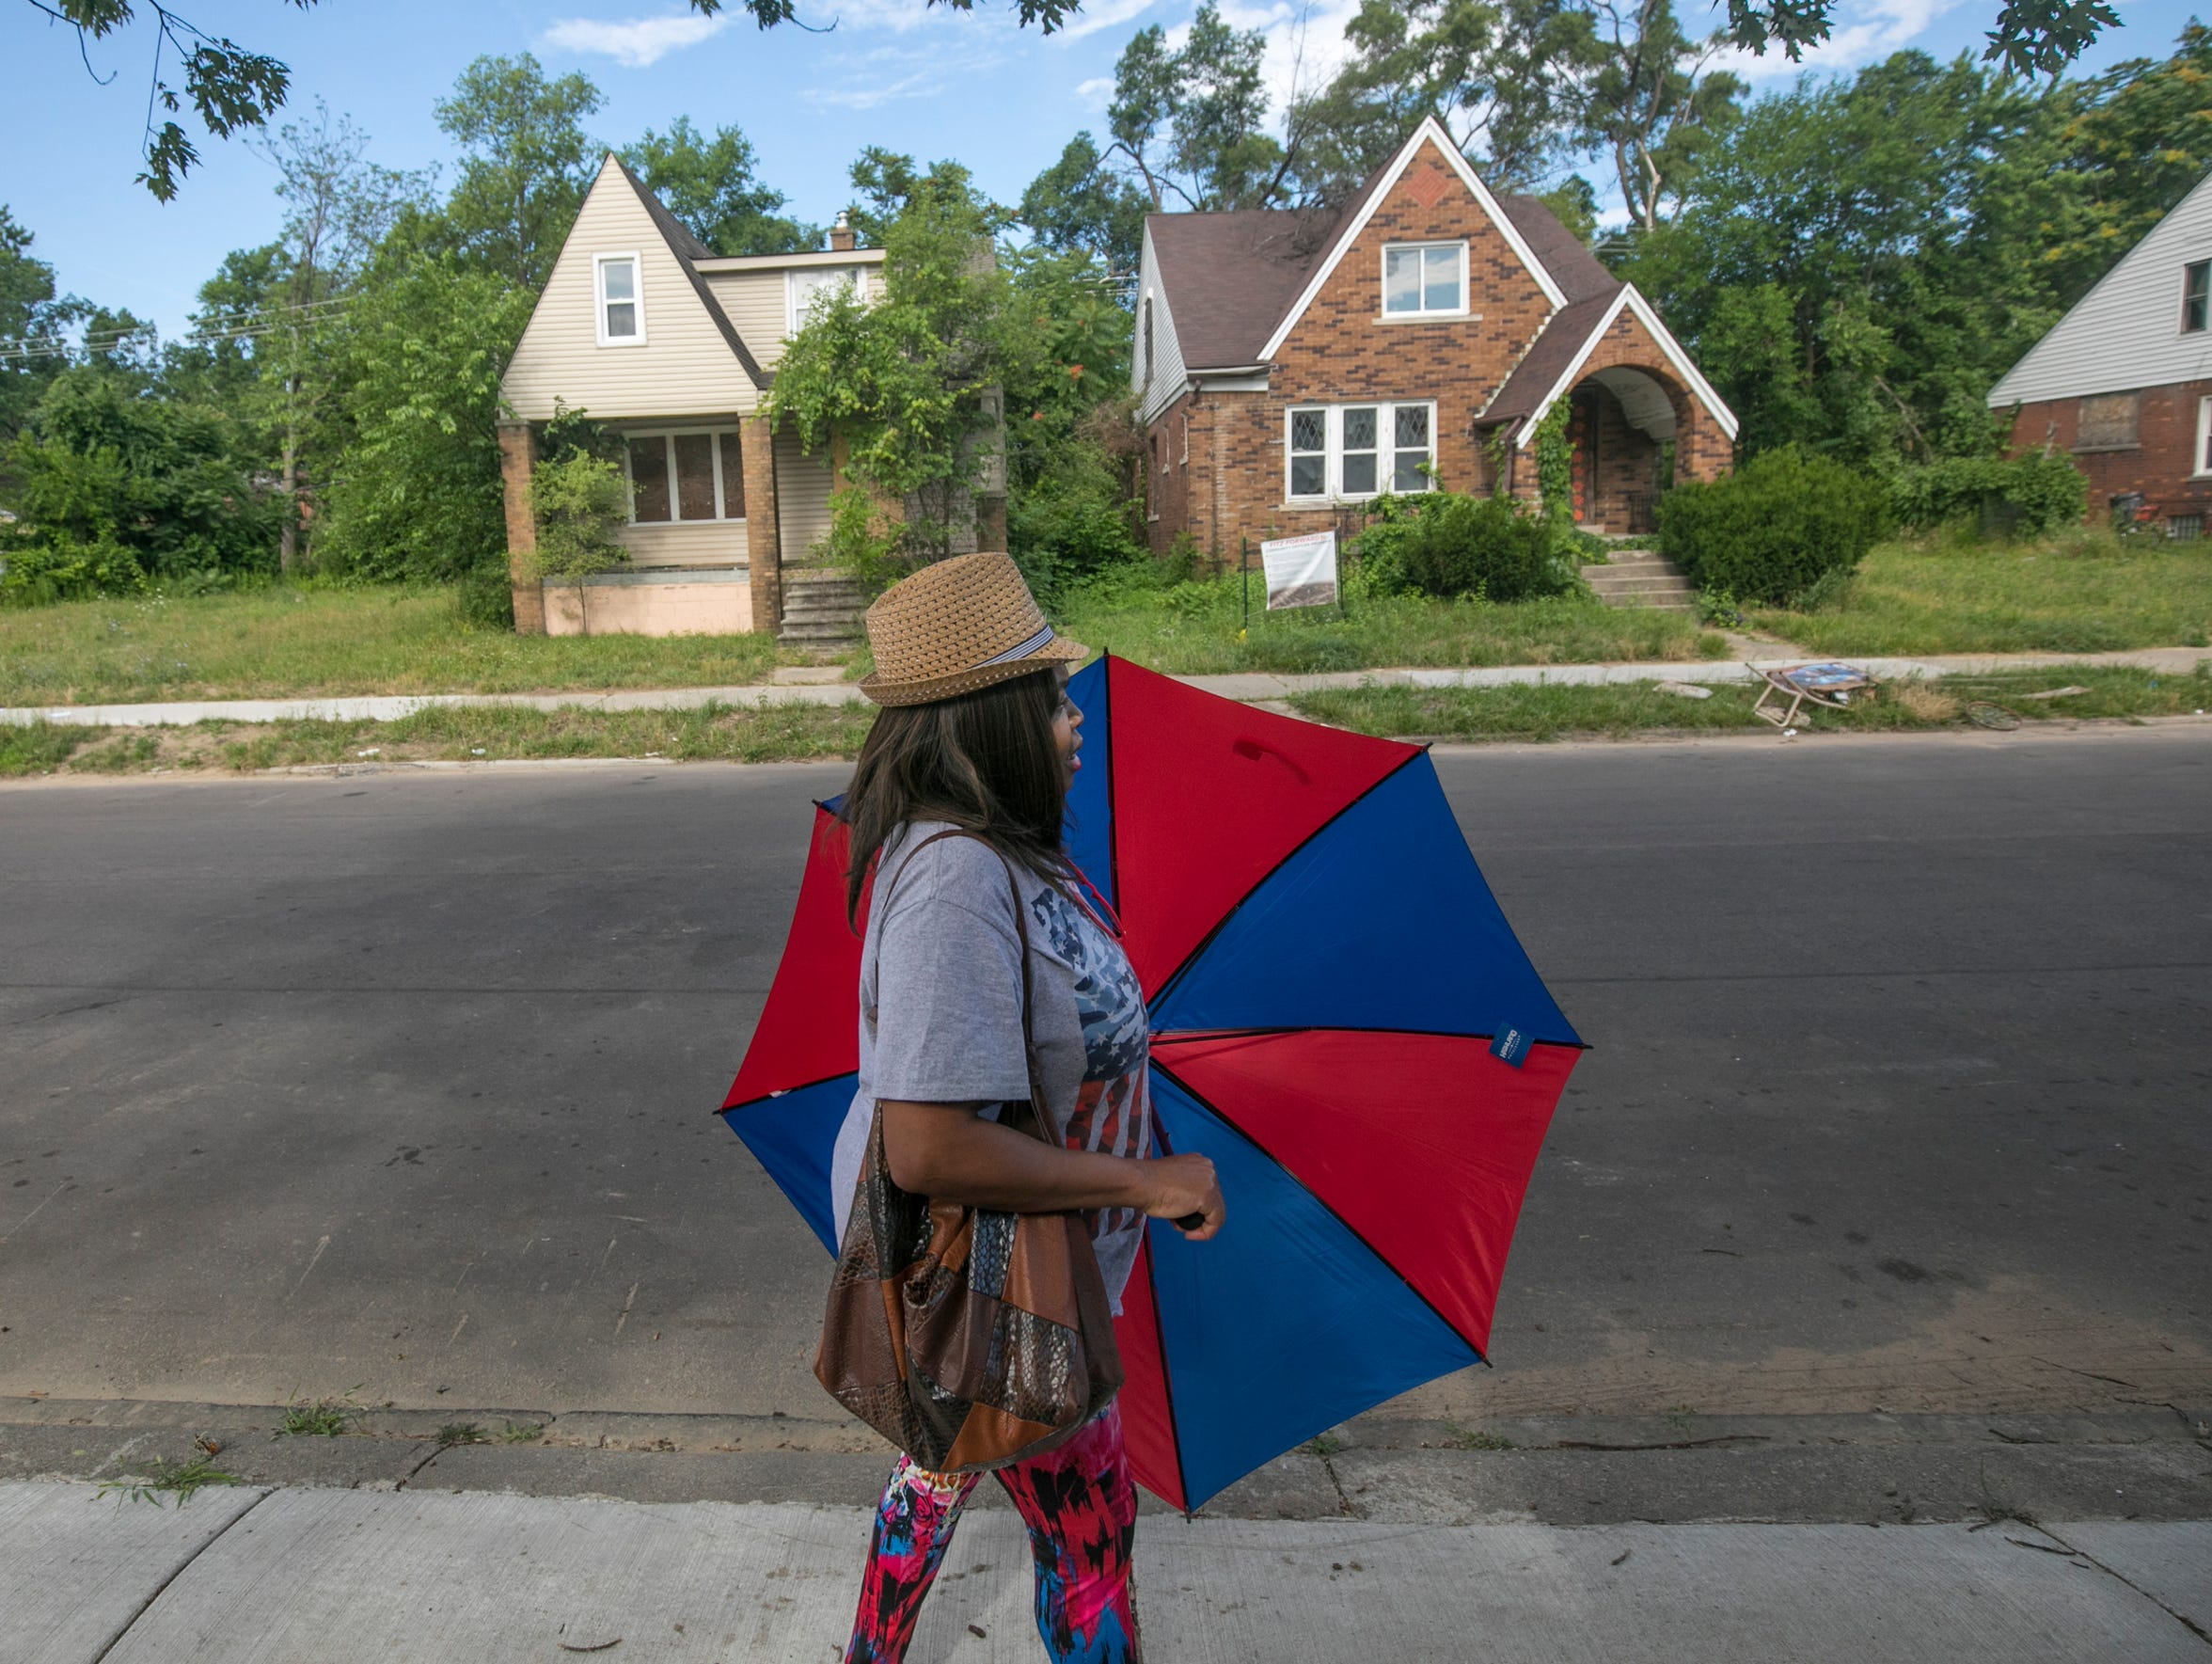 Renee Jones, 49, of Woodingham Drive said she would be more inclined to stay in the neighborhood if some of the abandoned homes are renovated. On Thursday, she walks by two homes slated for the Fitzgerald neighborhood revitalization project.